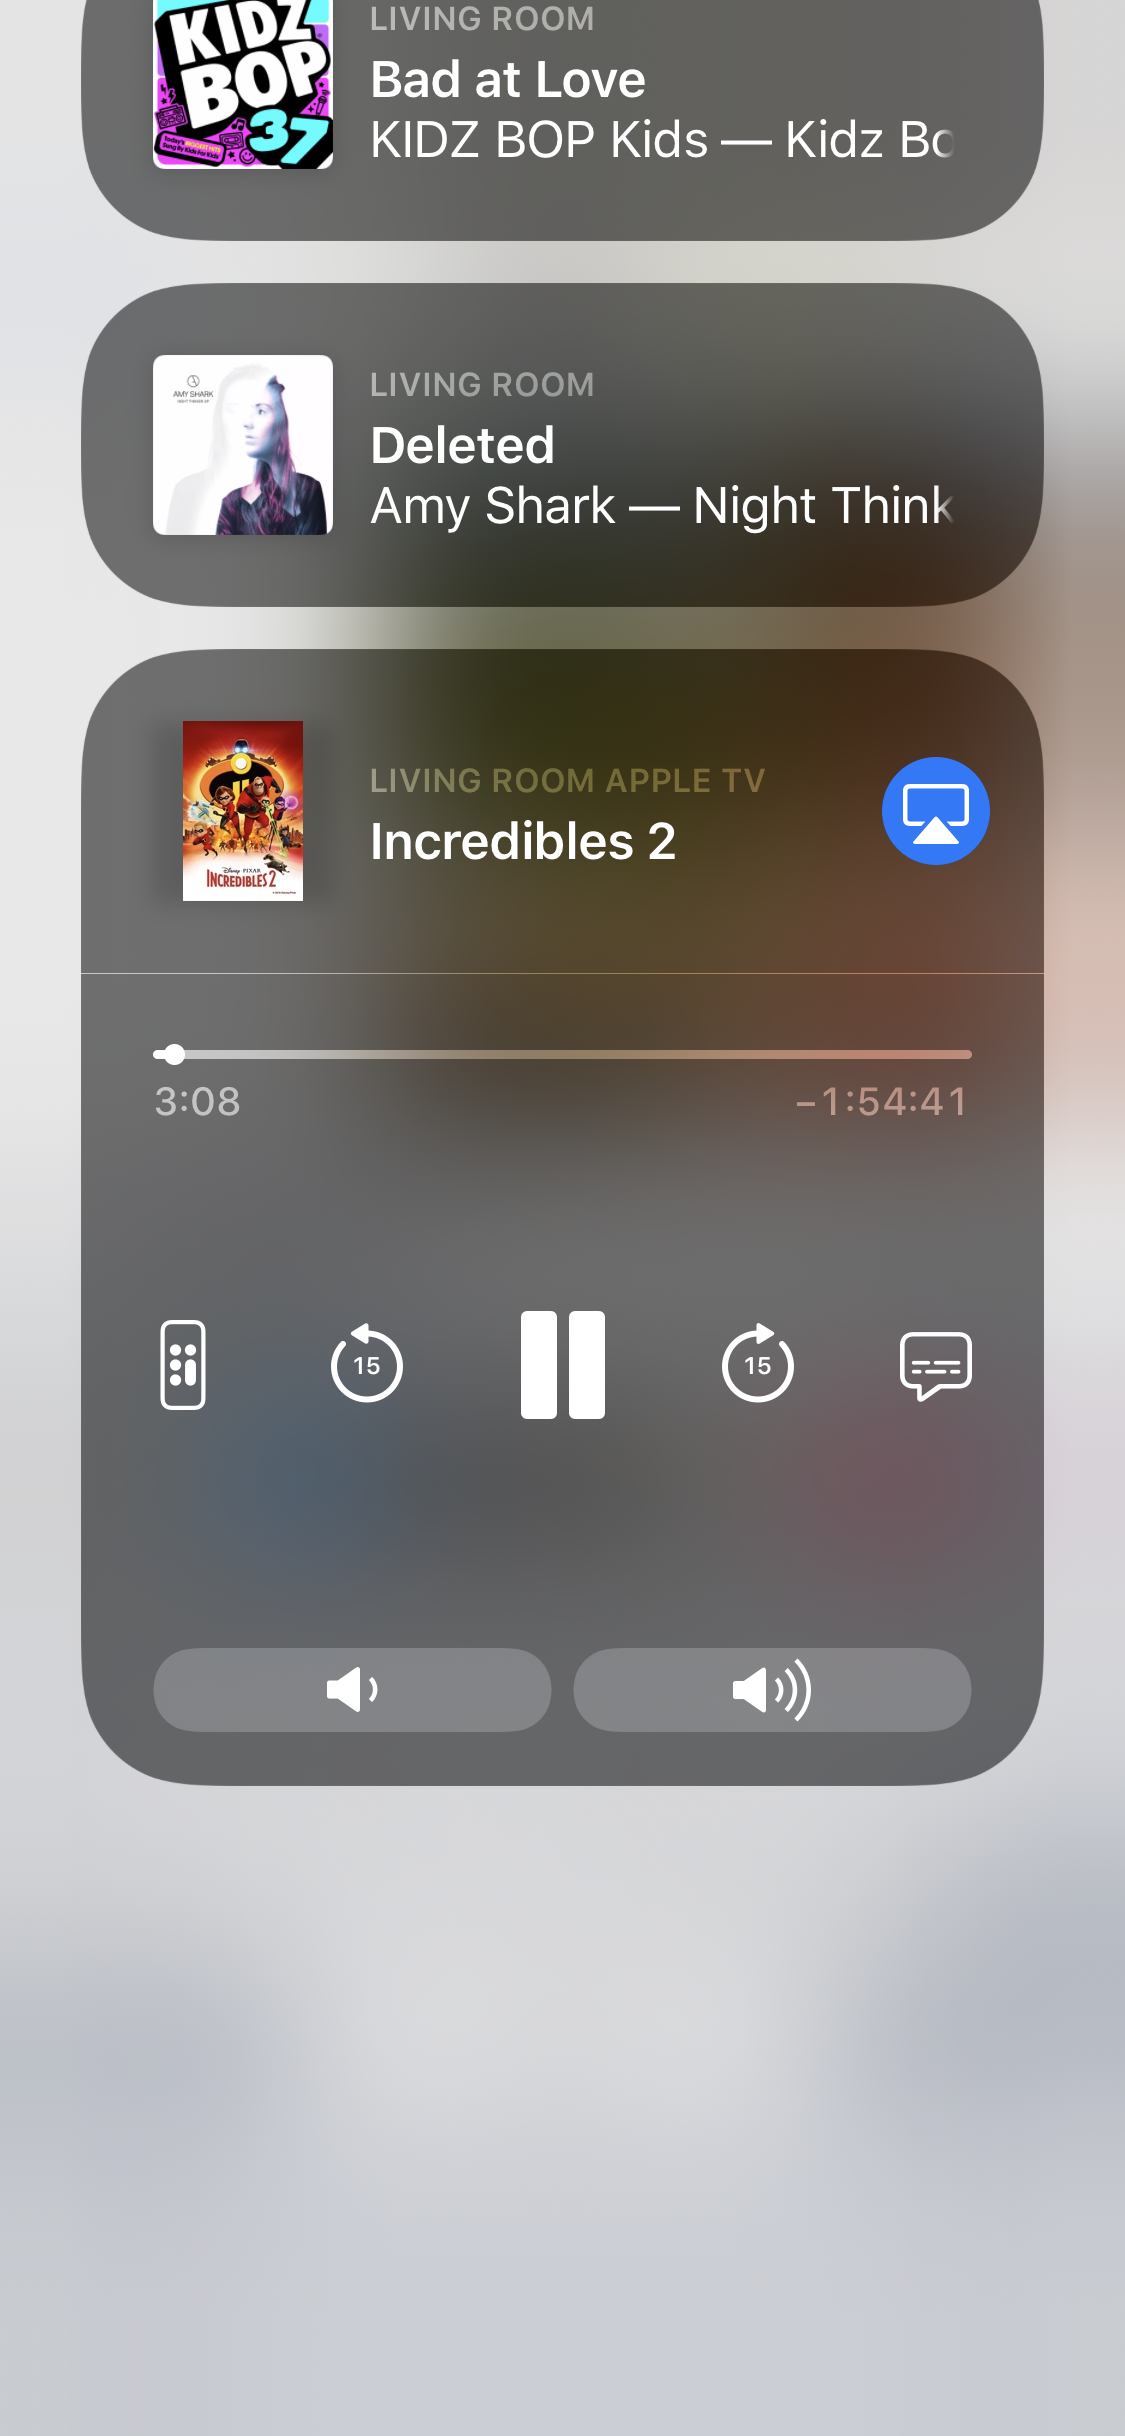 iOS 12 2 beta 4 now available, here's what's new - 9to5Mac